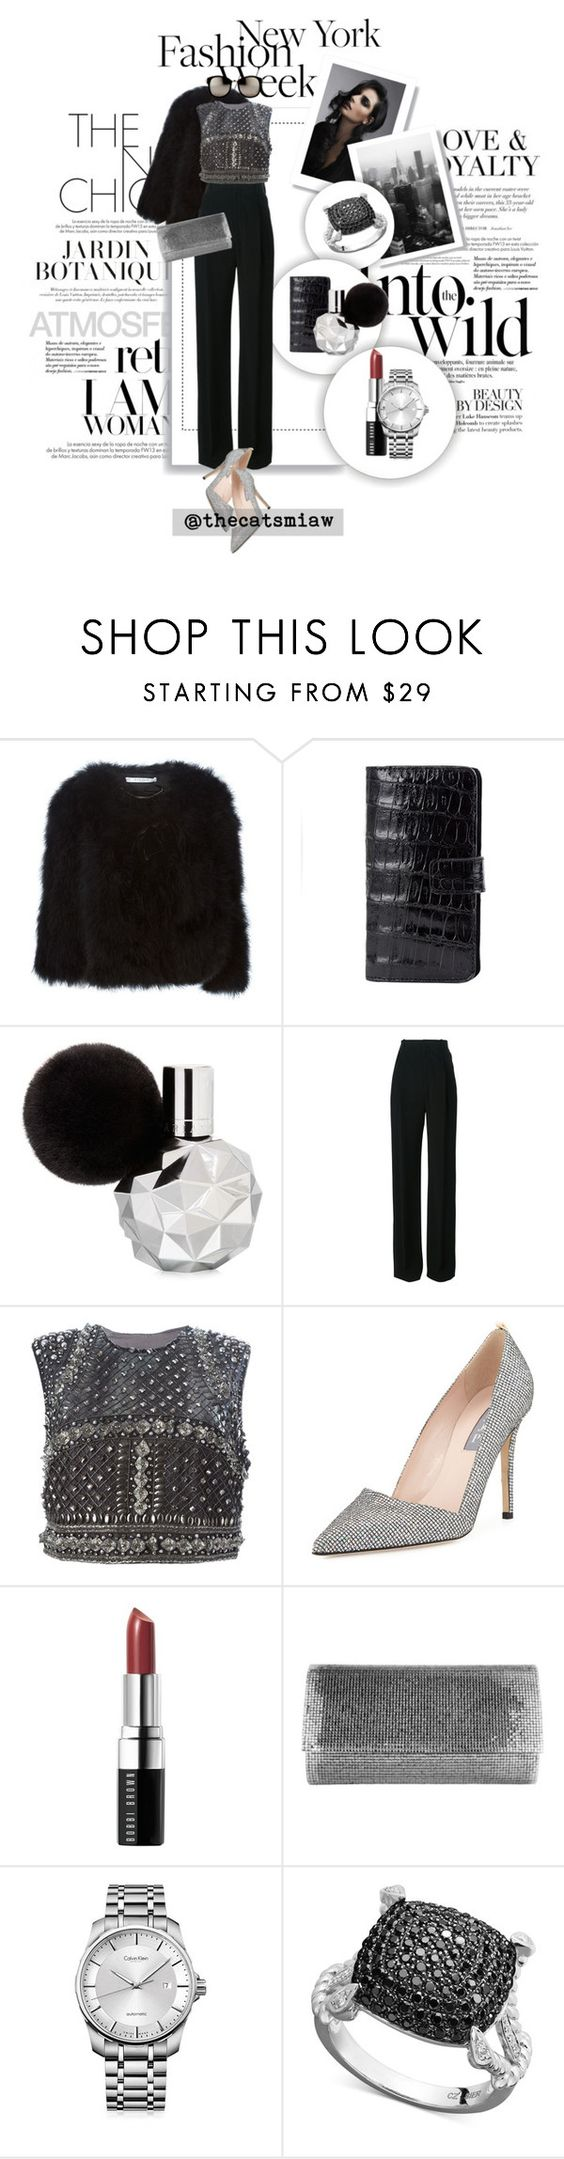 """""""Pack for NYFW! - Embellished"""" by belleforcible ❤ liked on Polyvore featuring Louis Vuitton, Anja, Givenchy, N+J Beverly Hills, Alberta Ferretti, SJP, Bobbi Brown Cosmetics, Judith Leiber, Calvin Klein and Linda Farrow"""